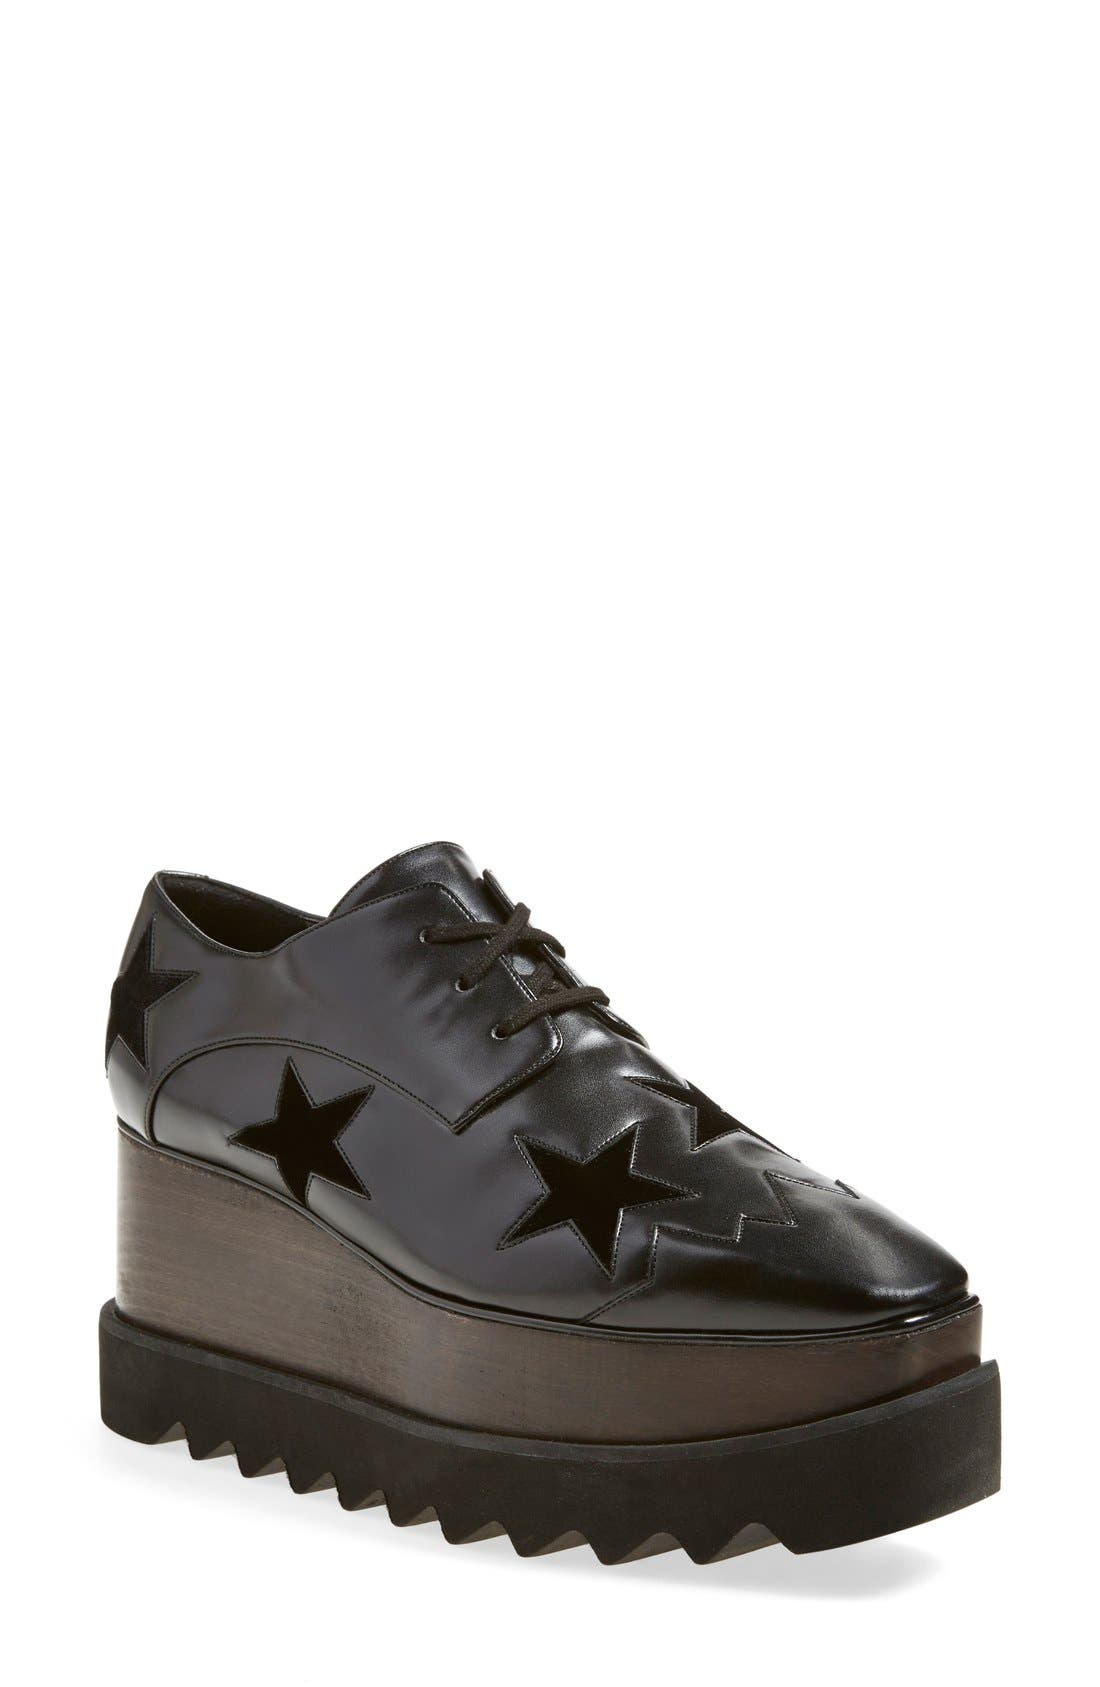 Stella McCartney 'Elyse' Platform Derby (Women)